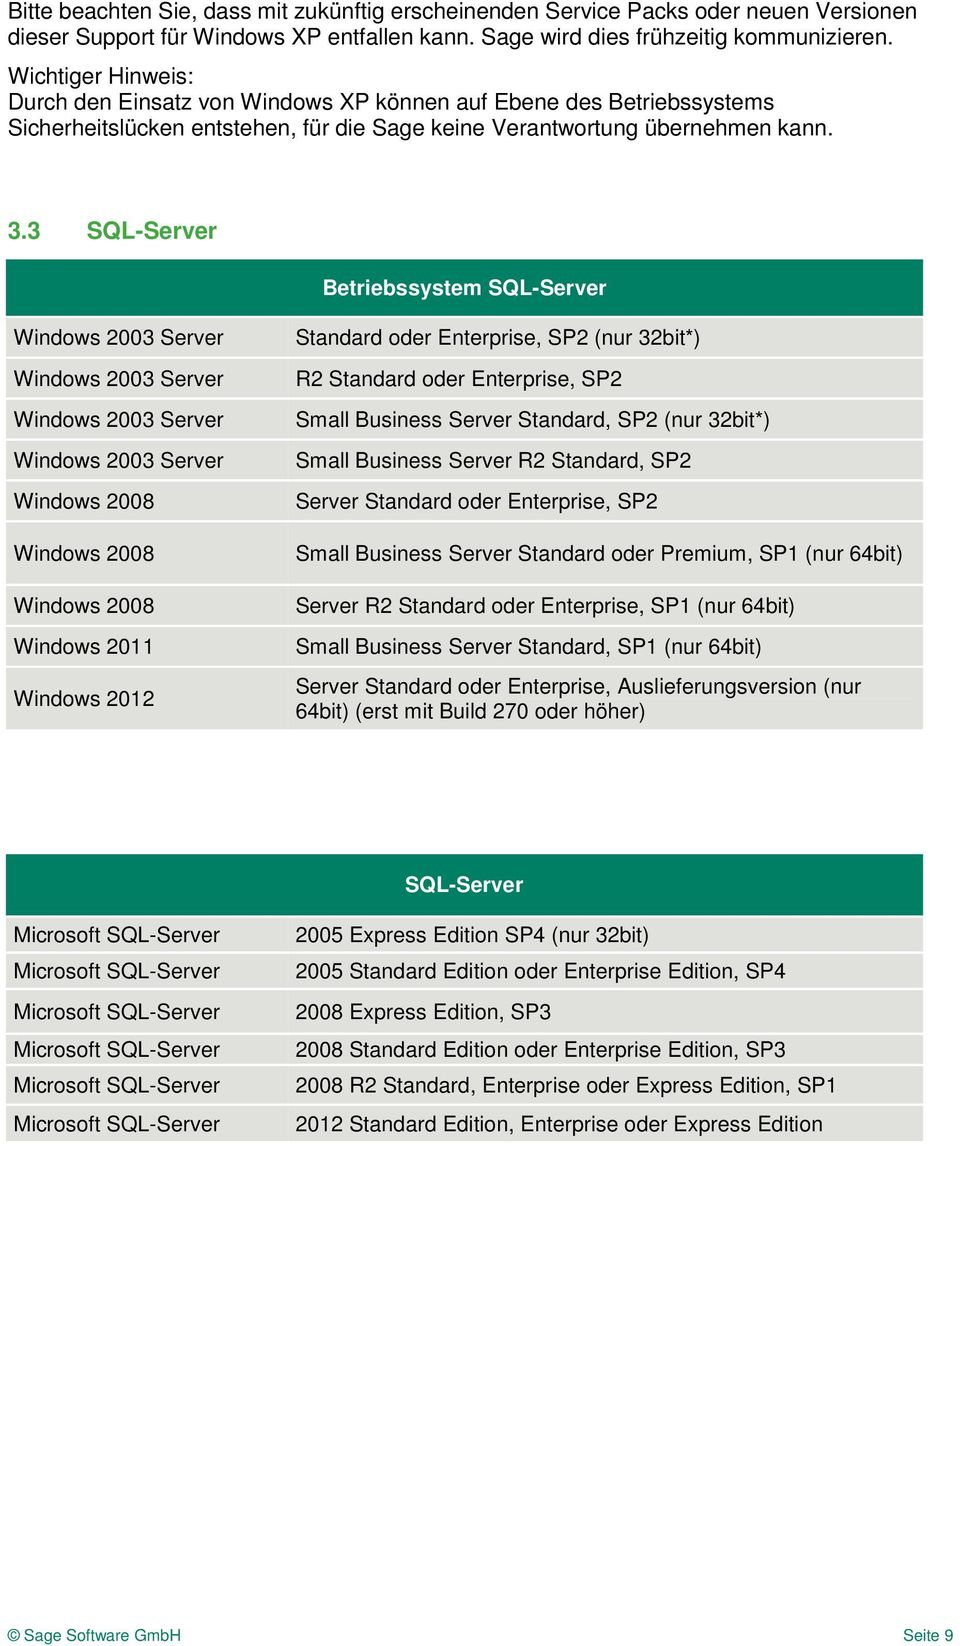 3 SQL-Server Betriebssystem SQL-Server Windows 2003 Server Windows 2003 Server Windows 2003 Server Windows 2003 Server Windows 2008 Windows 2008 Windows 2008 Windows 2011 Windows 2012 Standard oder